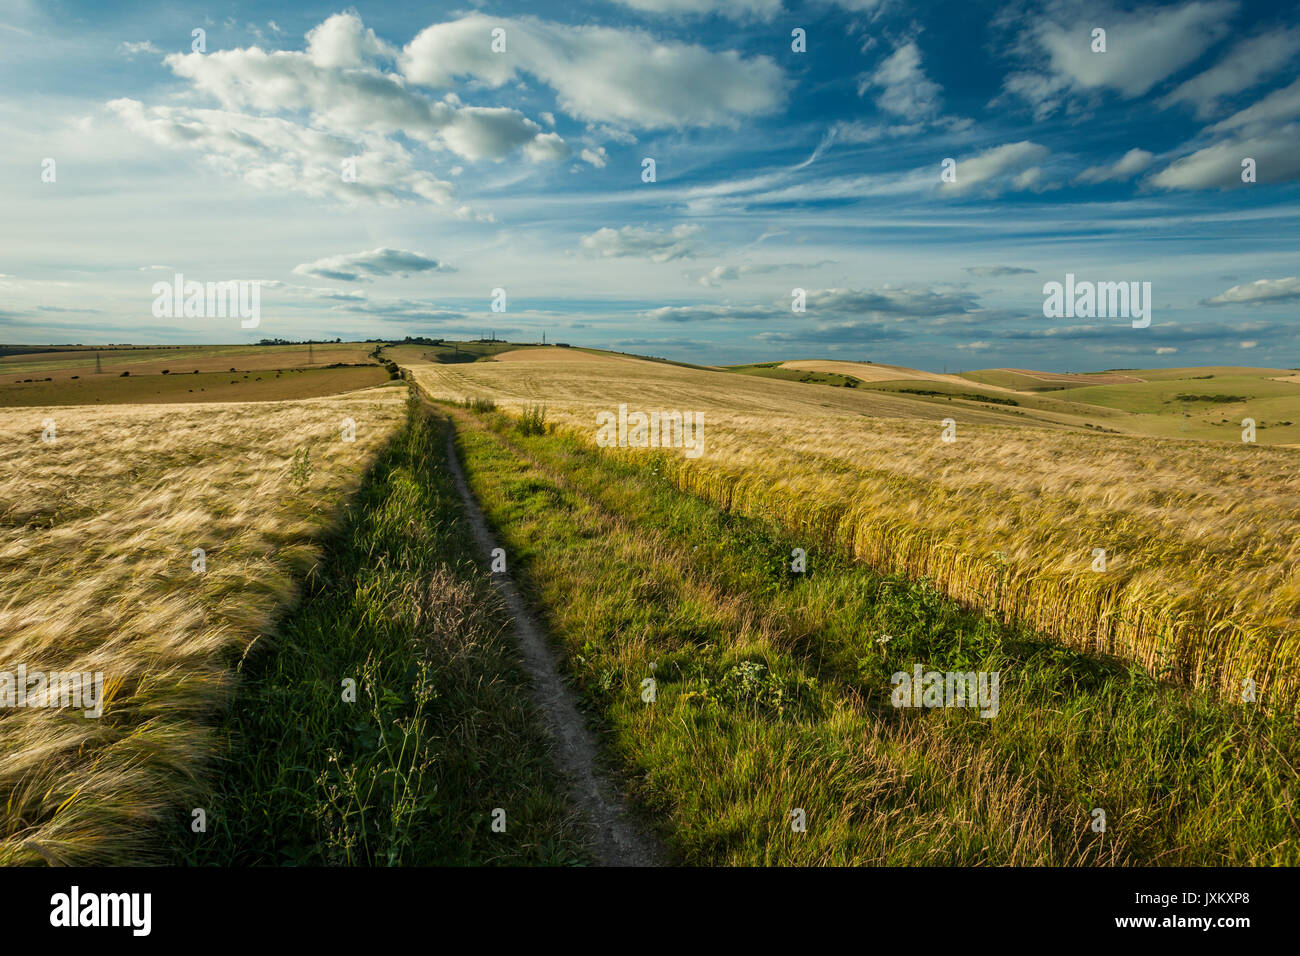 Monarch's Way hiking trail in South Downs National Park, West Sussex, England. - Stock Image